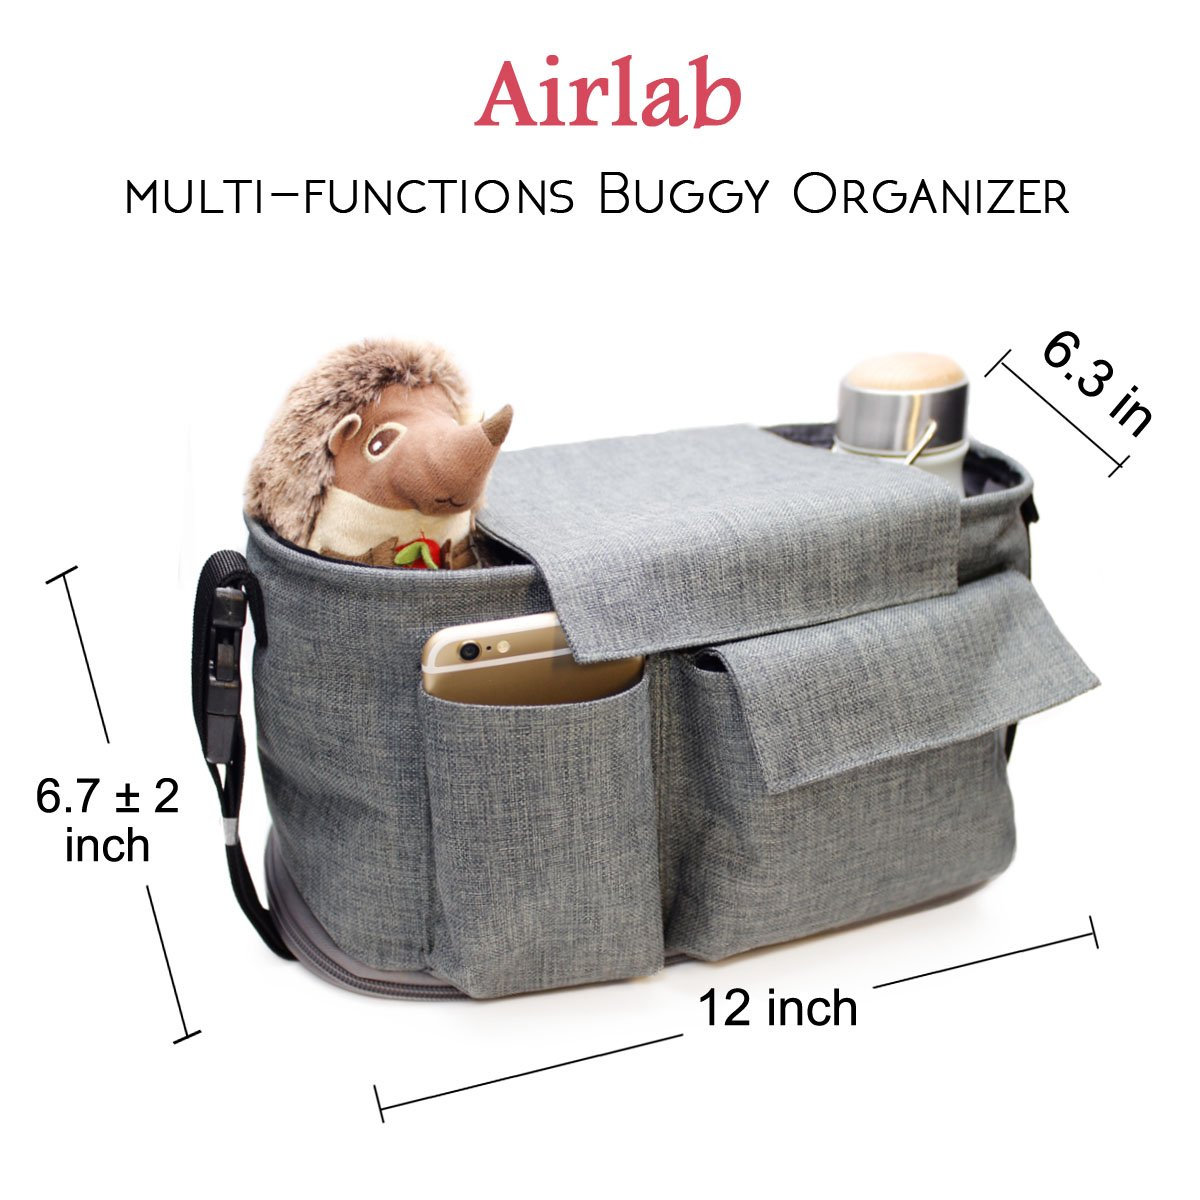 Airlab Stroller Organizer, Parents Organizer Bag, 2 inch Enlarge, Deep Bottle Cup Holder, Extra-Large Storage Space Fits Universal Stroller for Baby Accessories, Diapers, iPhone, Wallets, Waterproof by Airlab (Image #5)